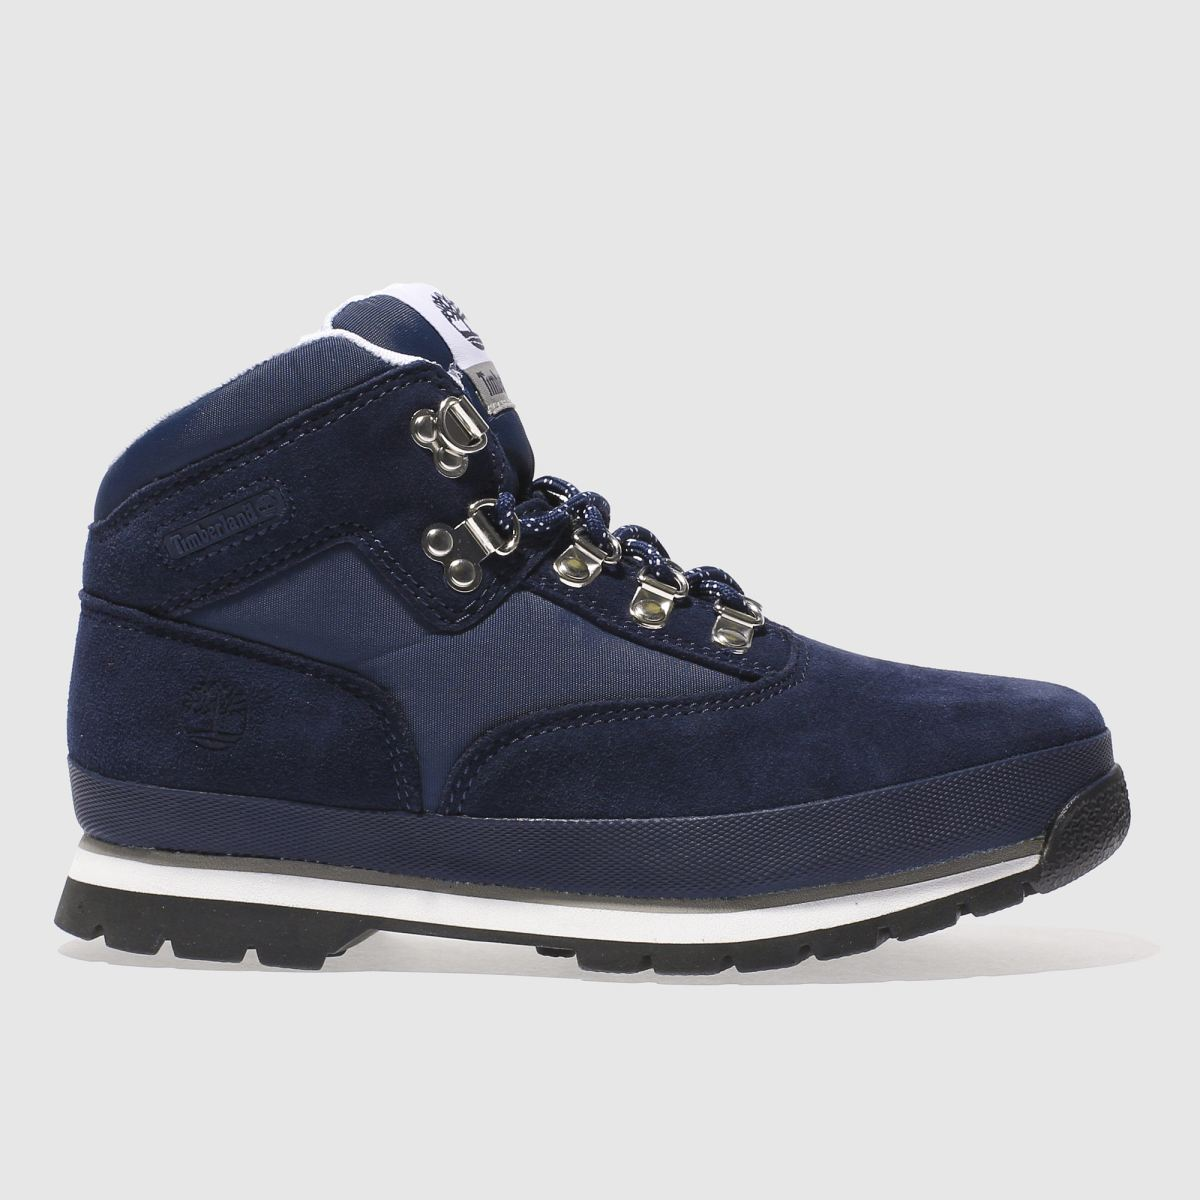 timberland navy & white euro hiker Boys Youth Boots